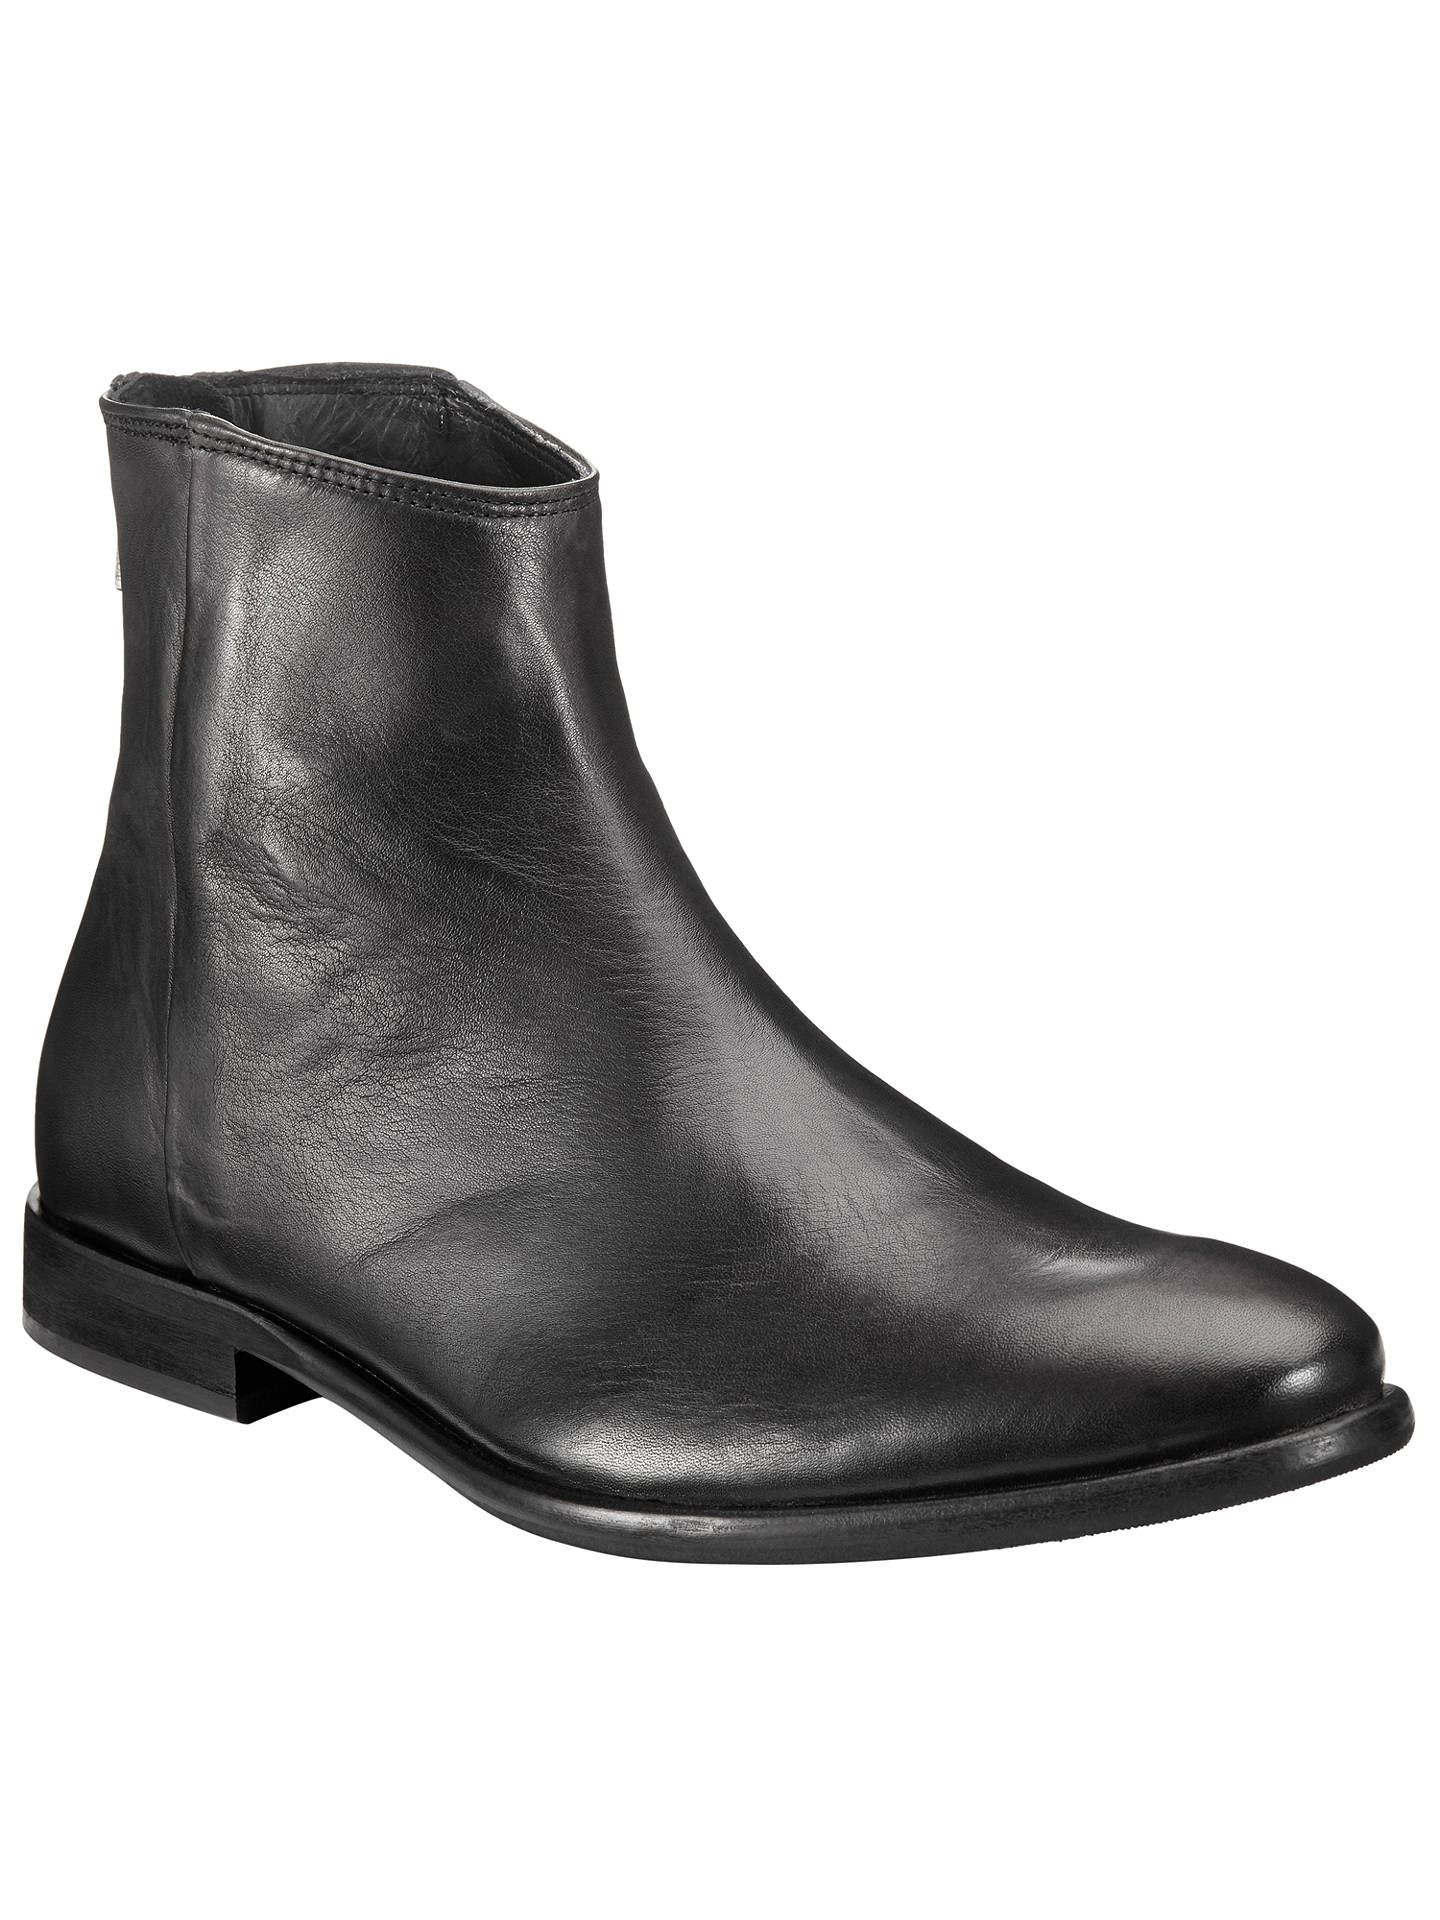 c875dd03f83 Paul Smith Rear Zip Leather Ankle Boots, Black at John Lewis & Partners